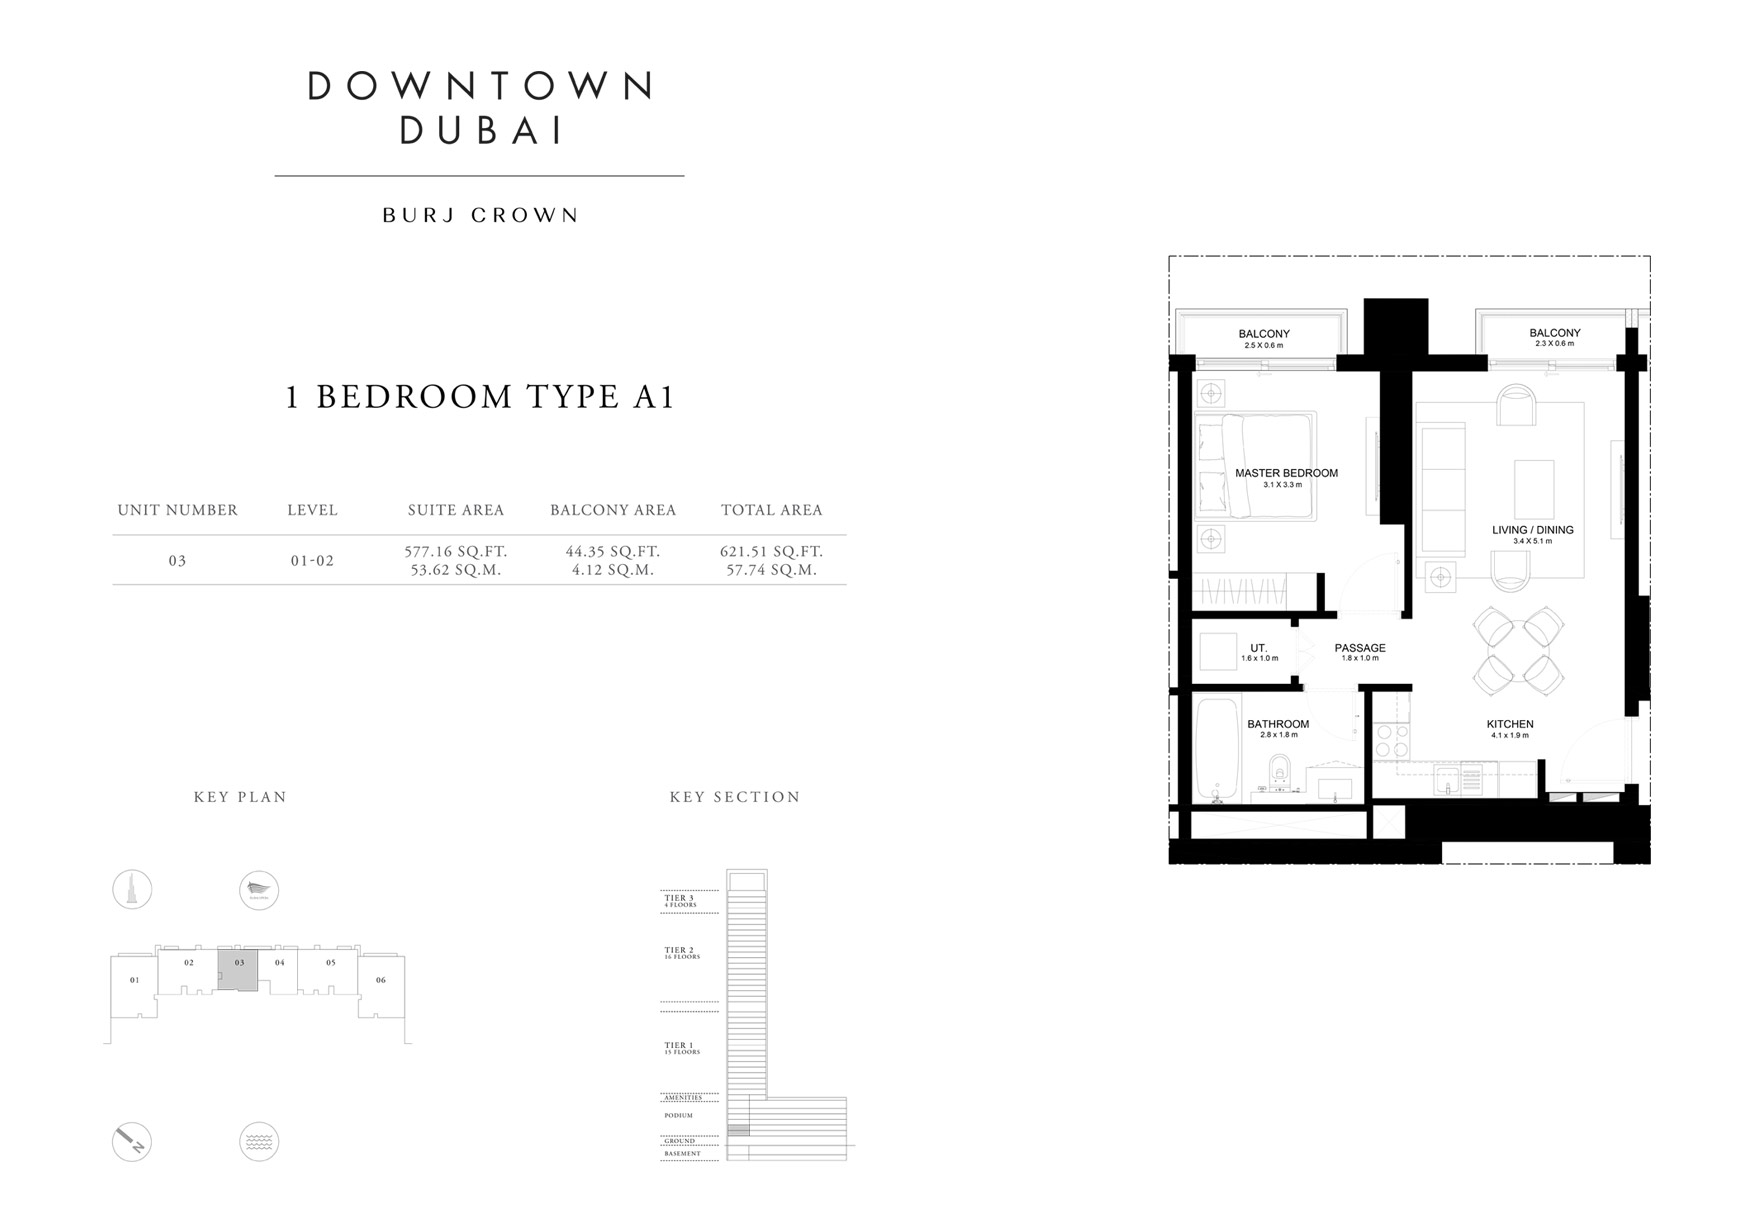 1 Bedroom Type A1, Size 621 sq ft